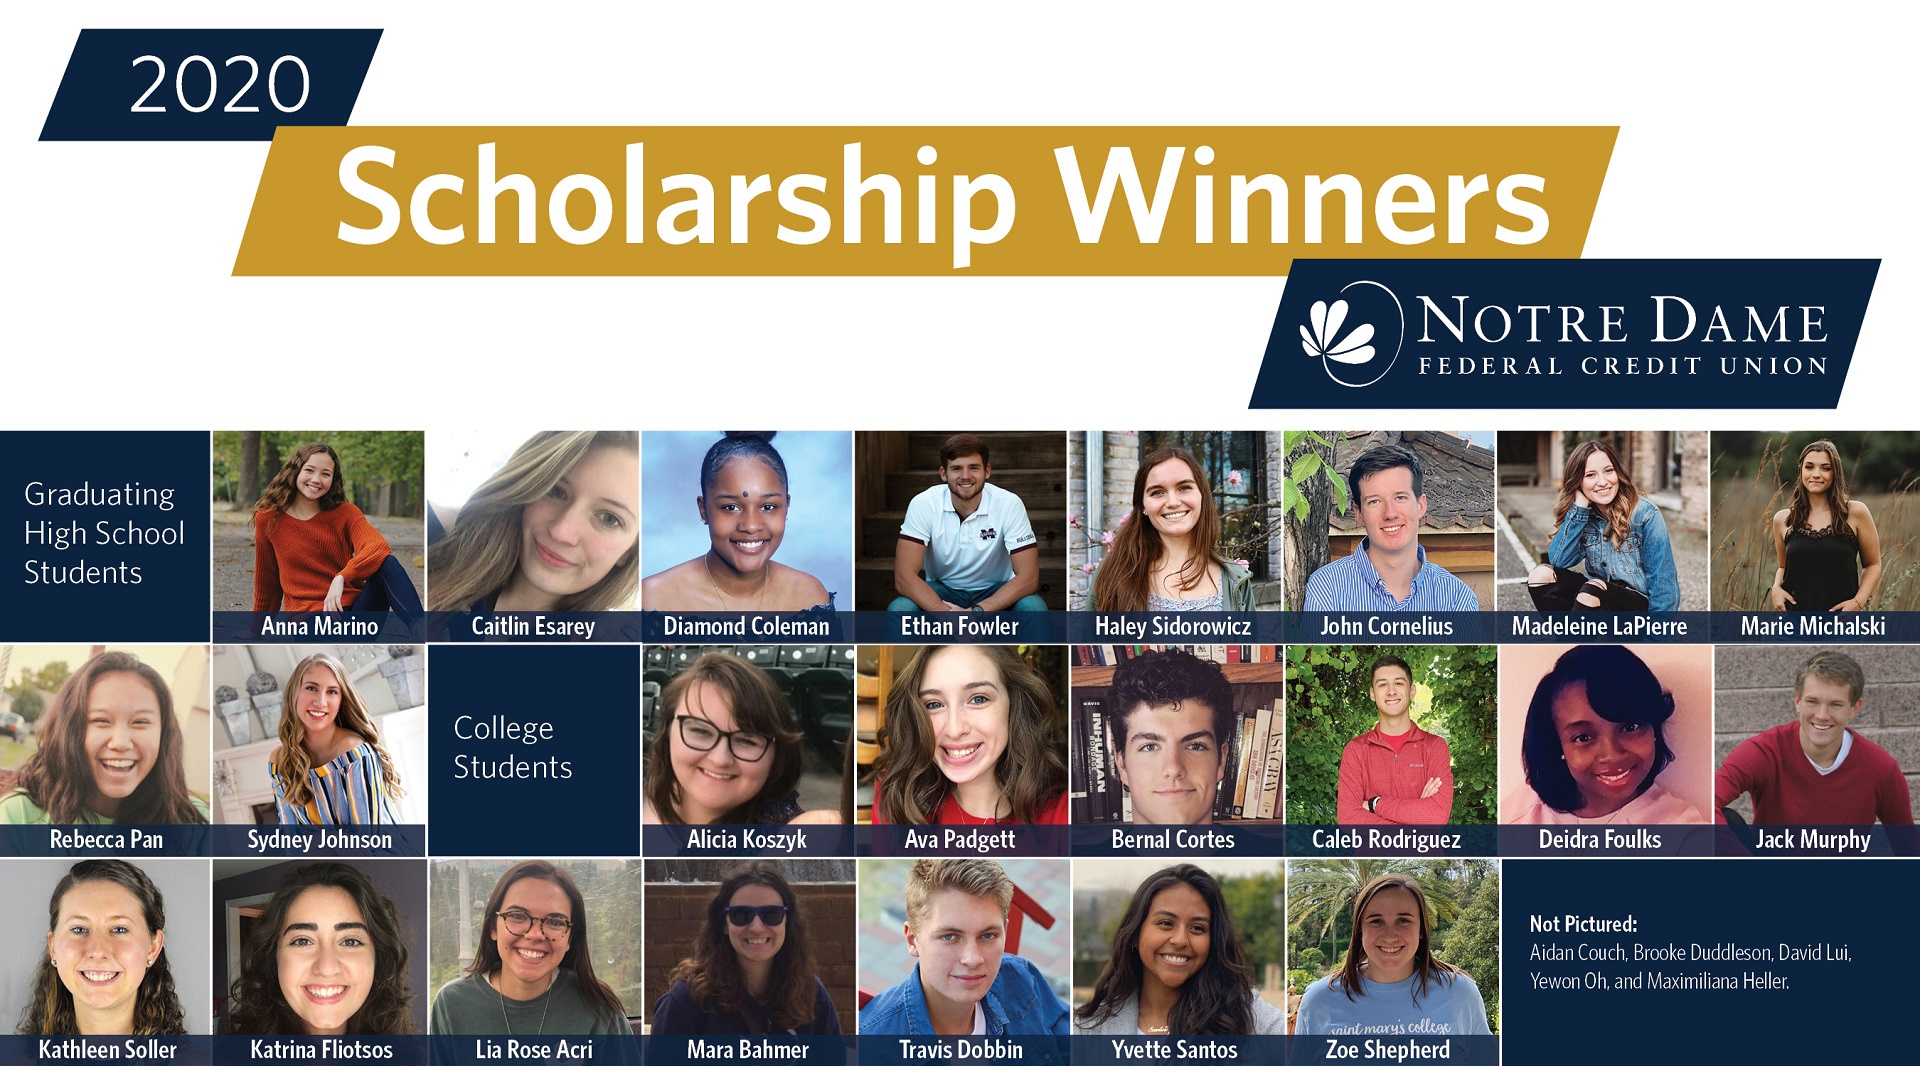 2020 Scholarship Winners. Graduating High School Students & College Students